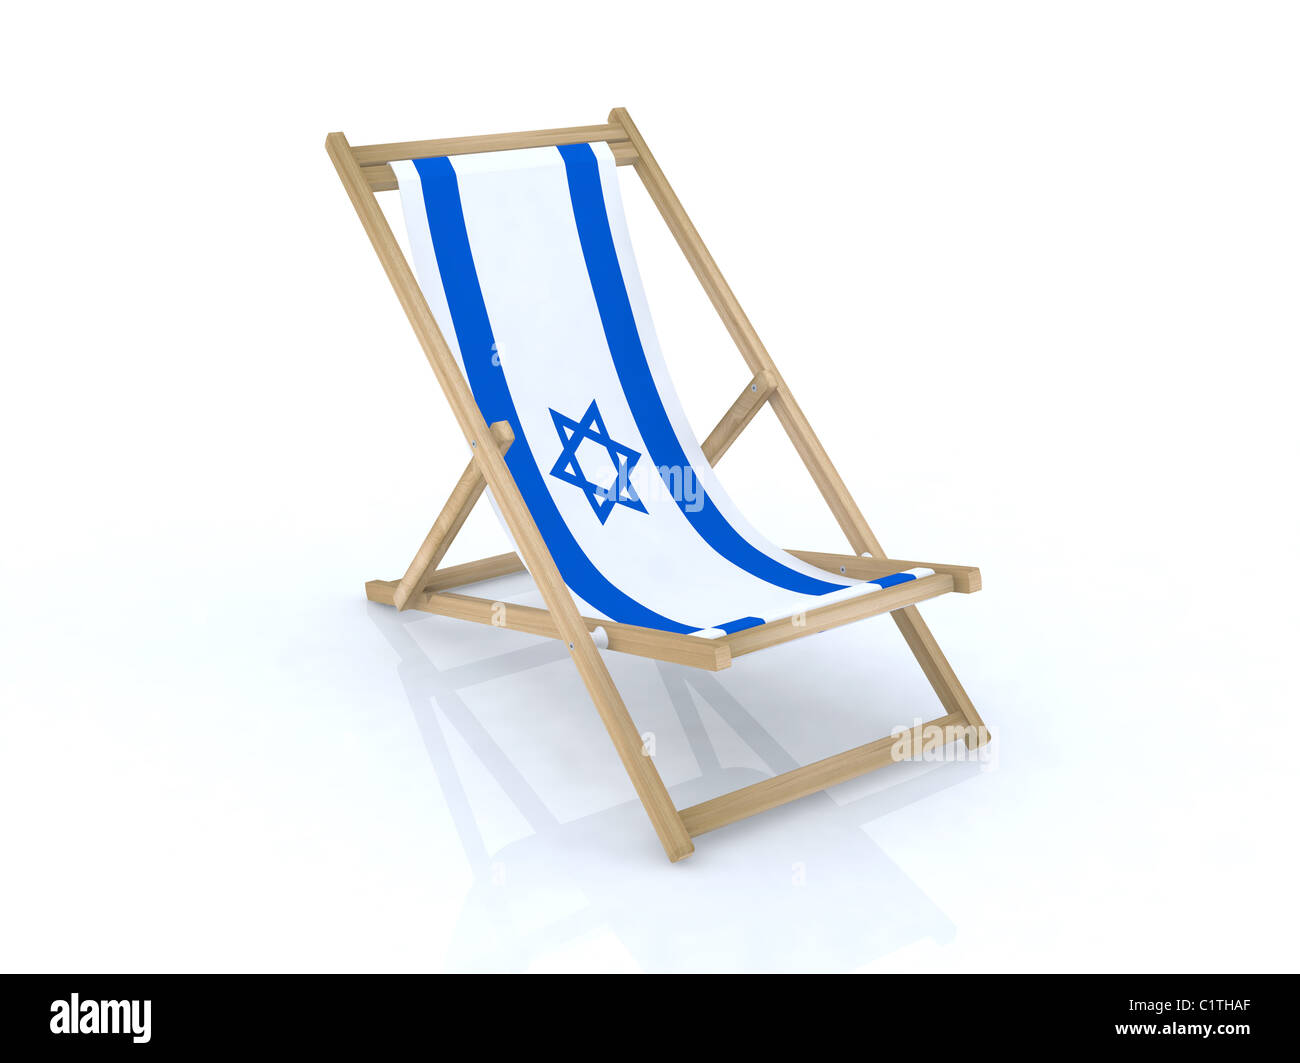 wood desk chair with israel flag 3d illustration Stock Photo